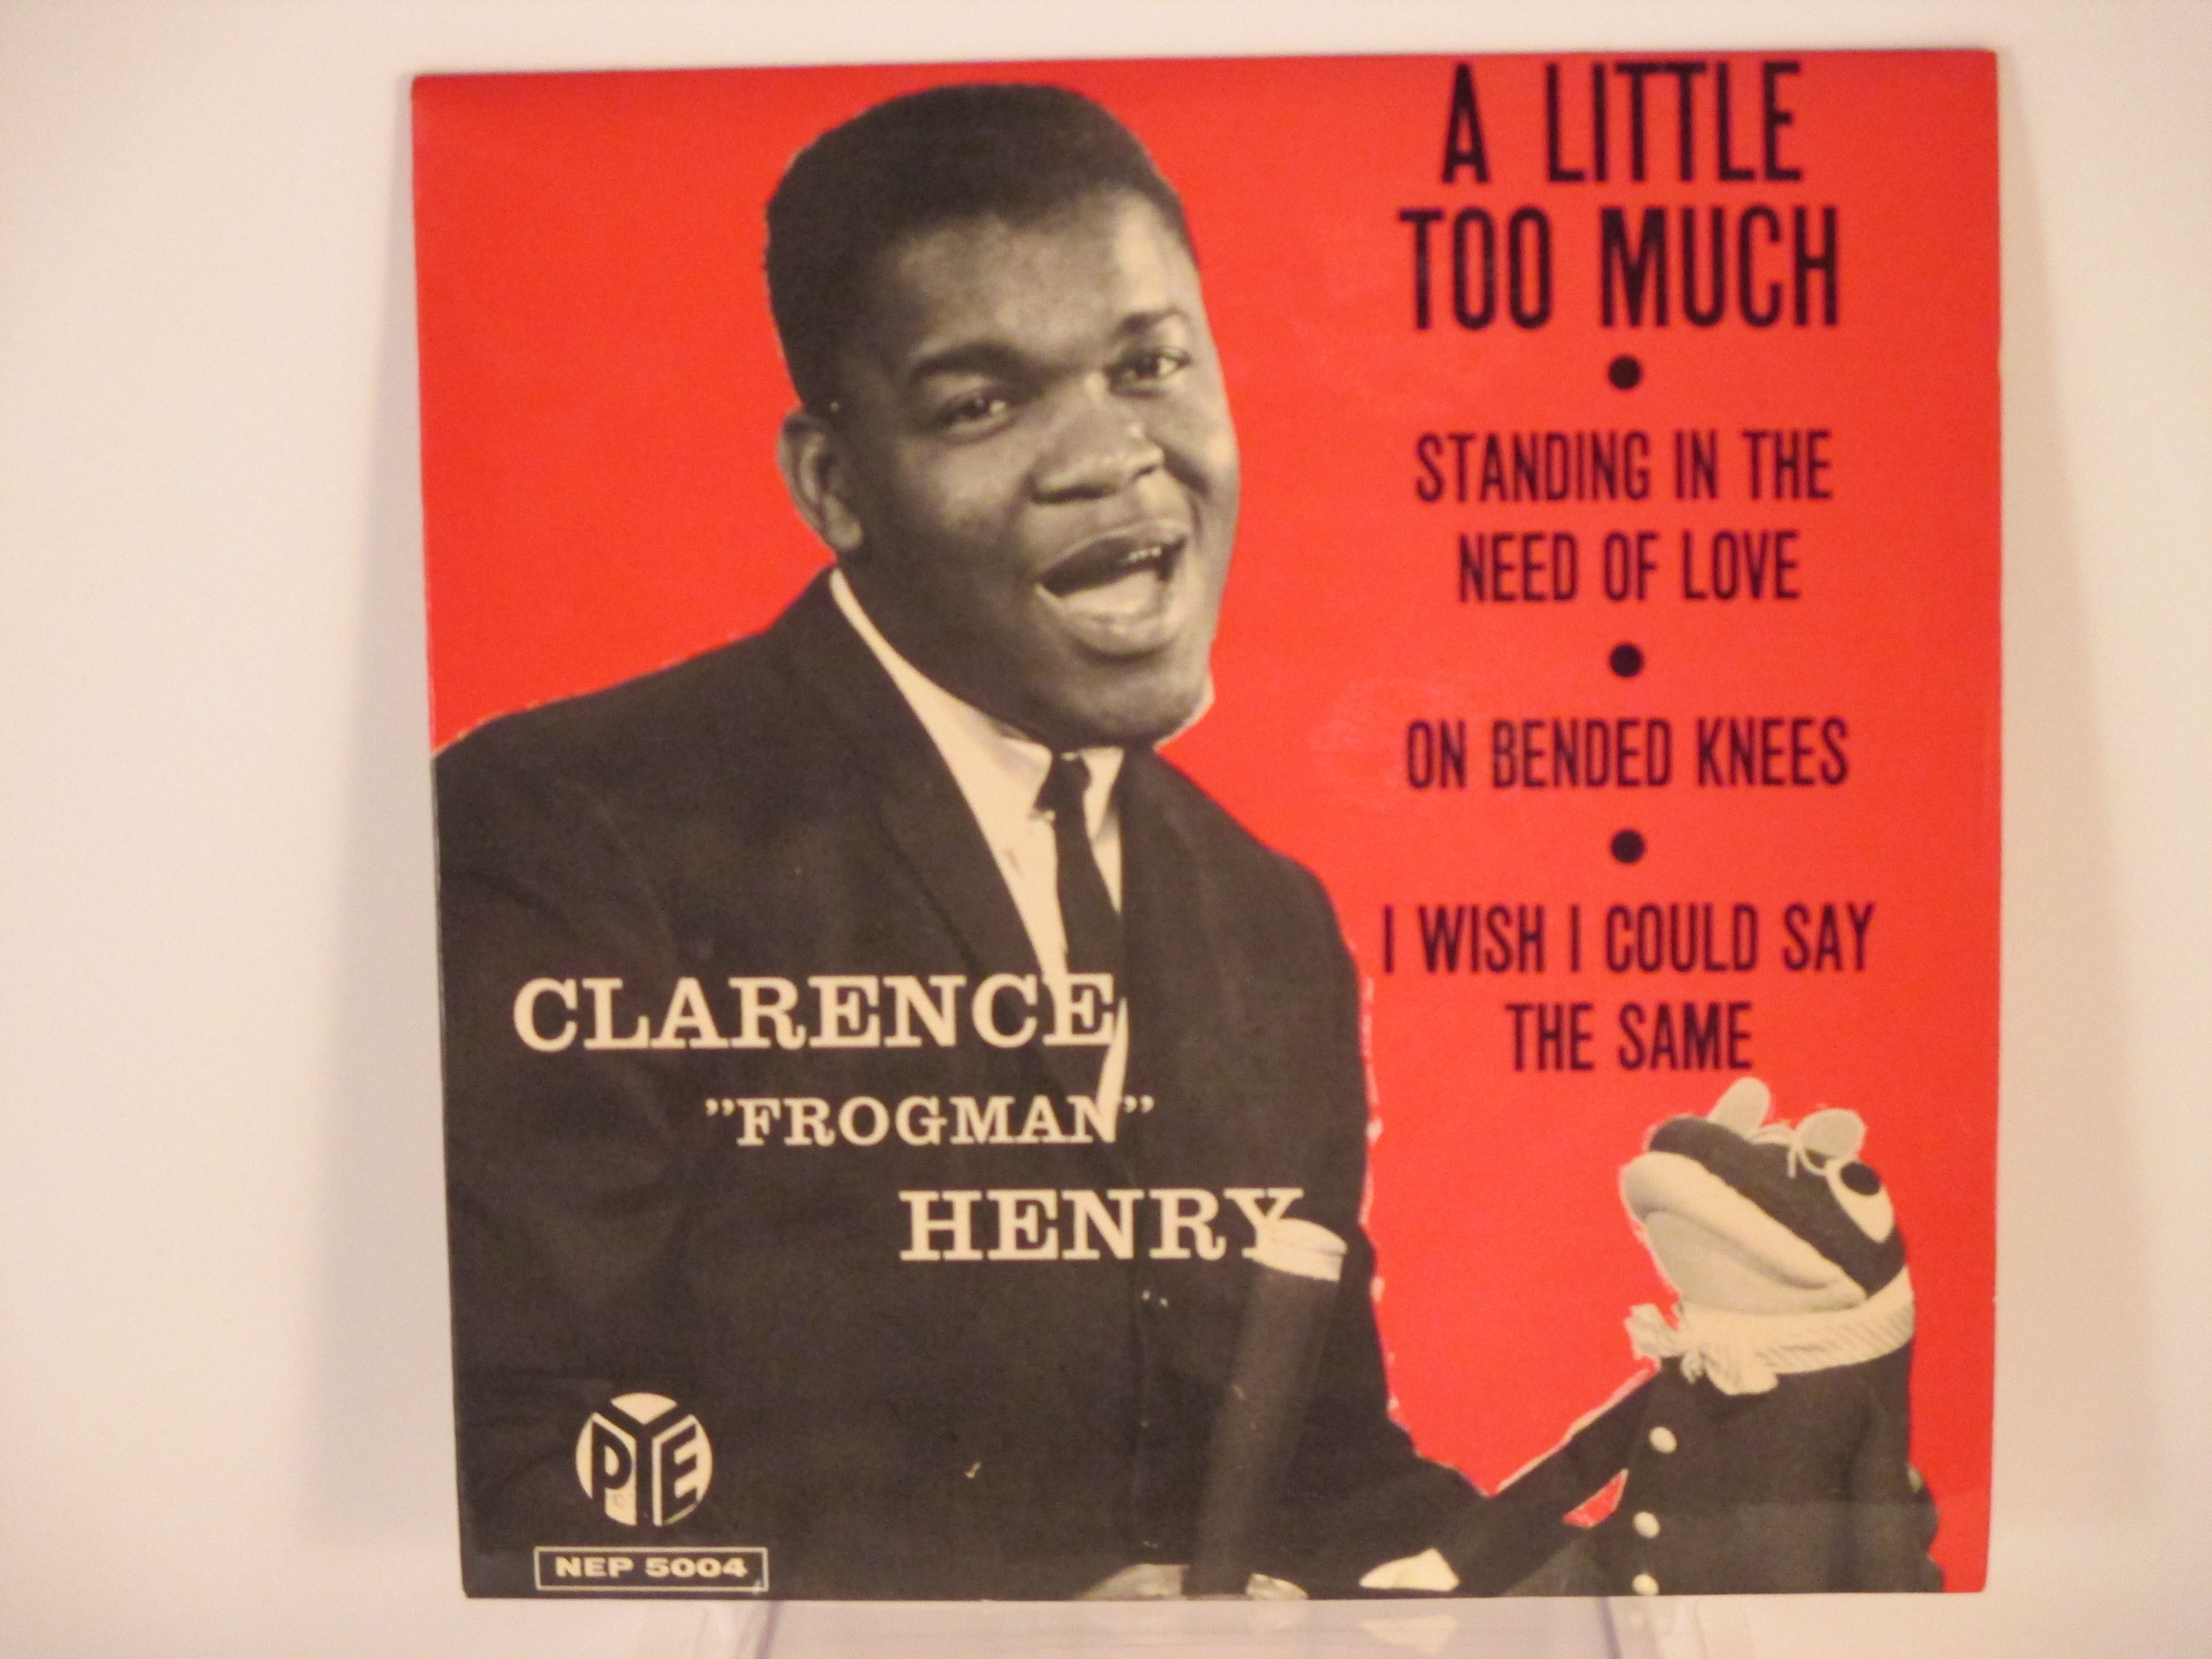 """CLARENCE """"FROGMAN"""" HENRY : (EP) A little too much / Standing in the need of love / On bended knees / I wish I could say the same"""